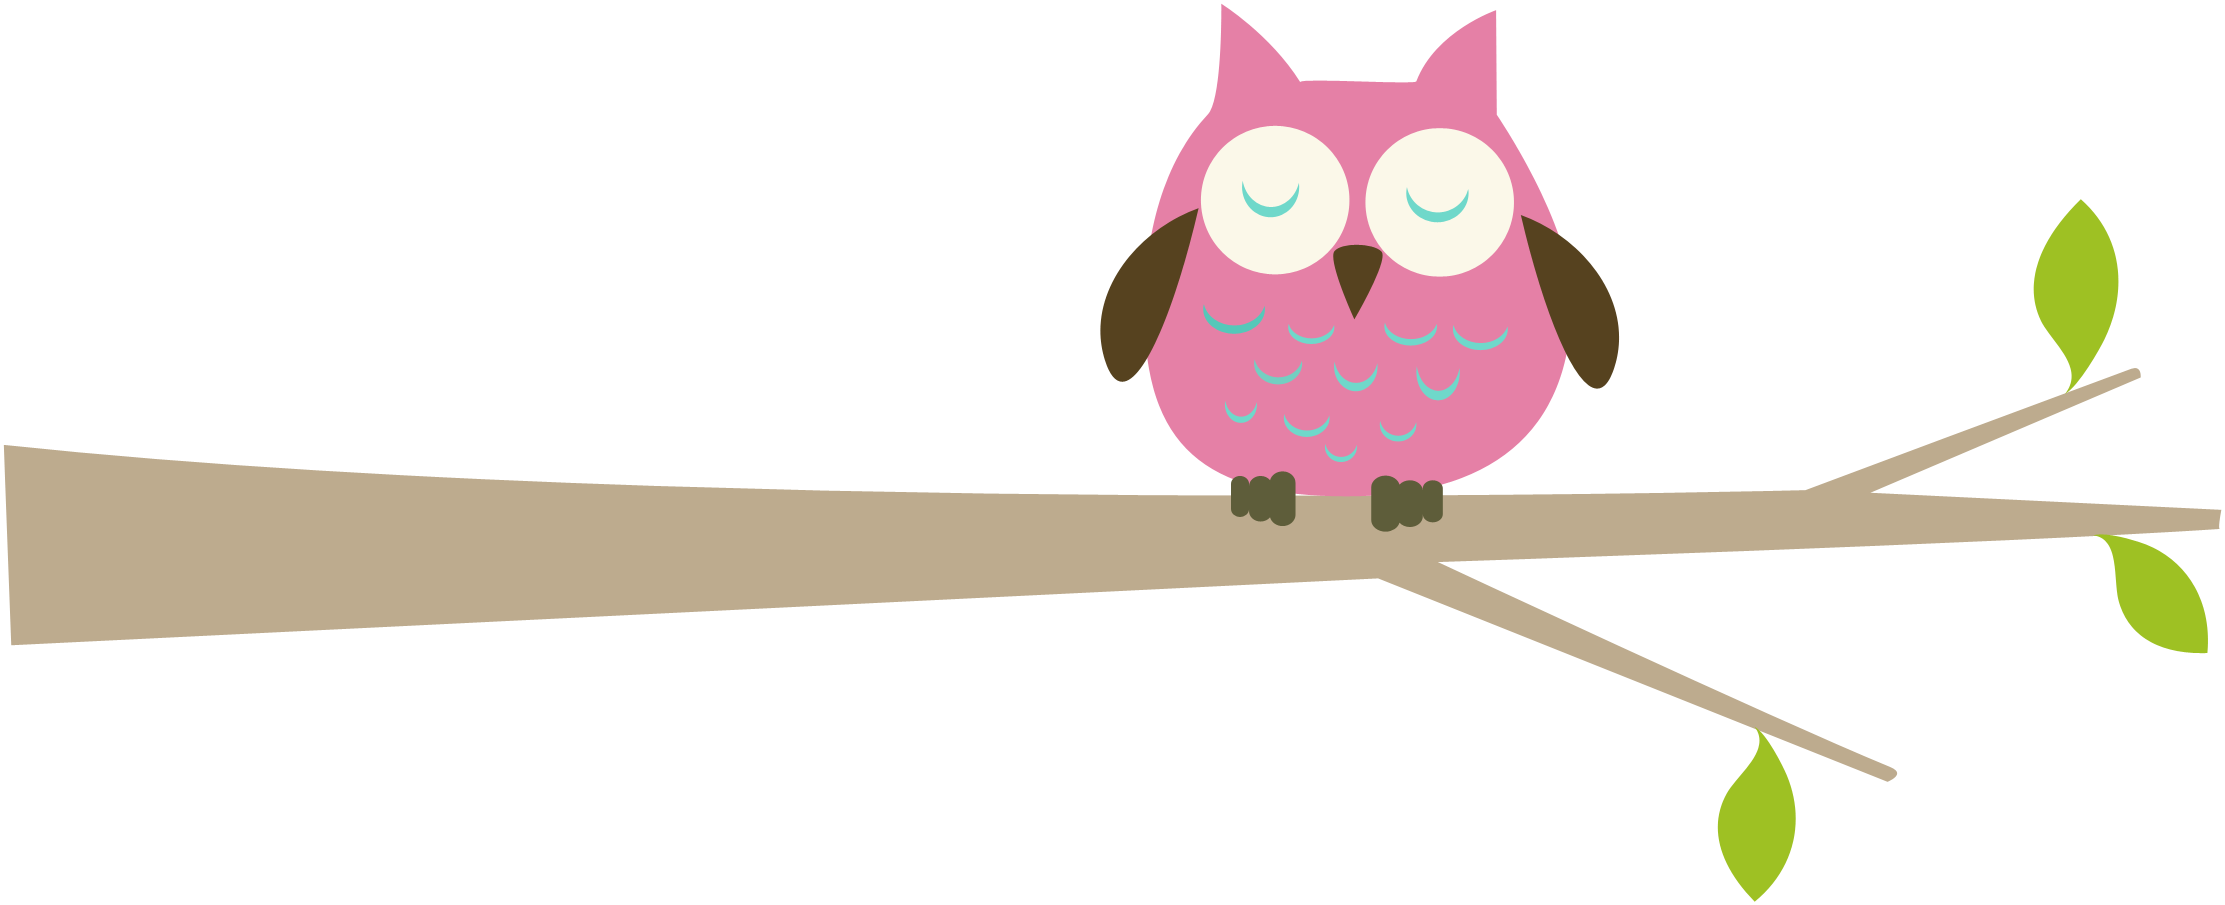 Free owl on branch clipart.